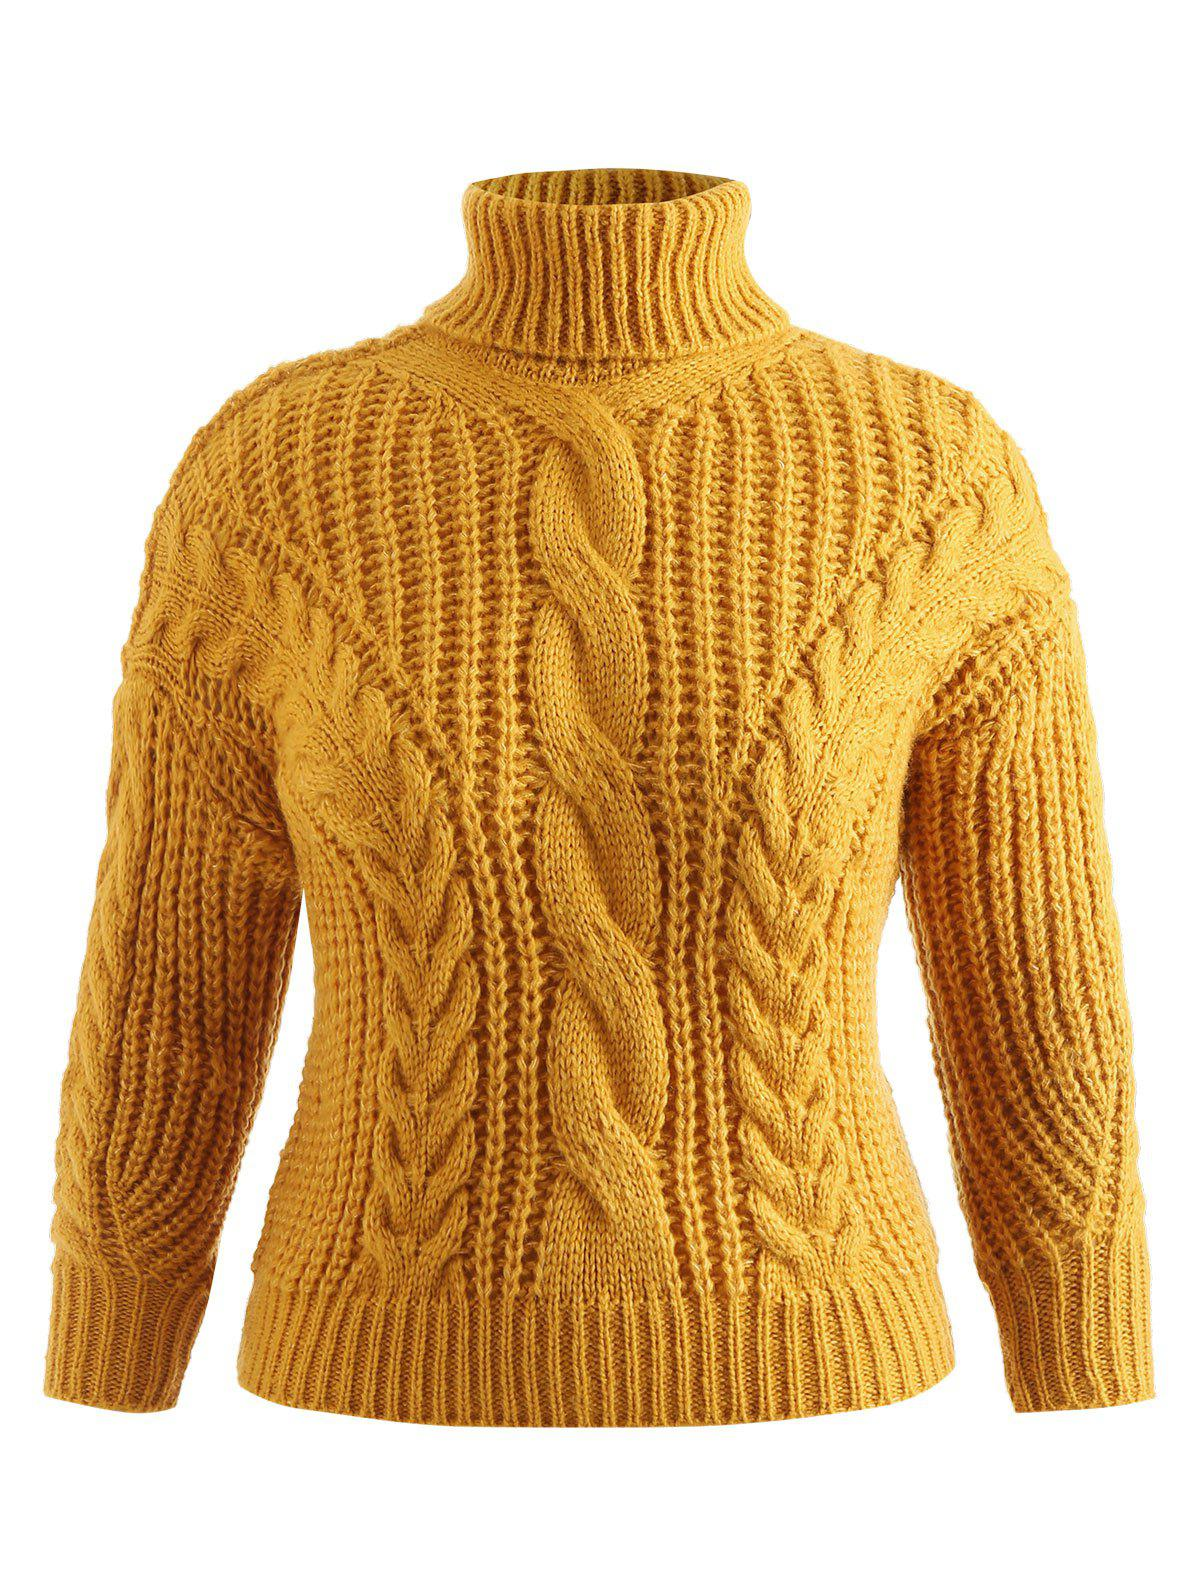 9058622300e 2019 Plus Size Turtleneck Cable Knit Sweater